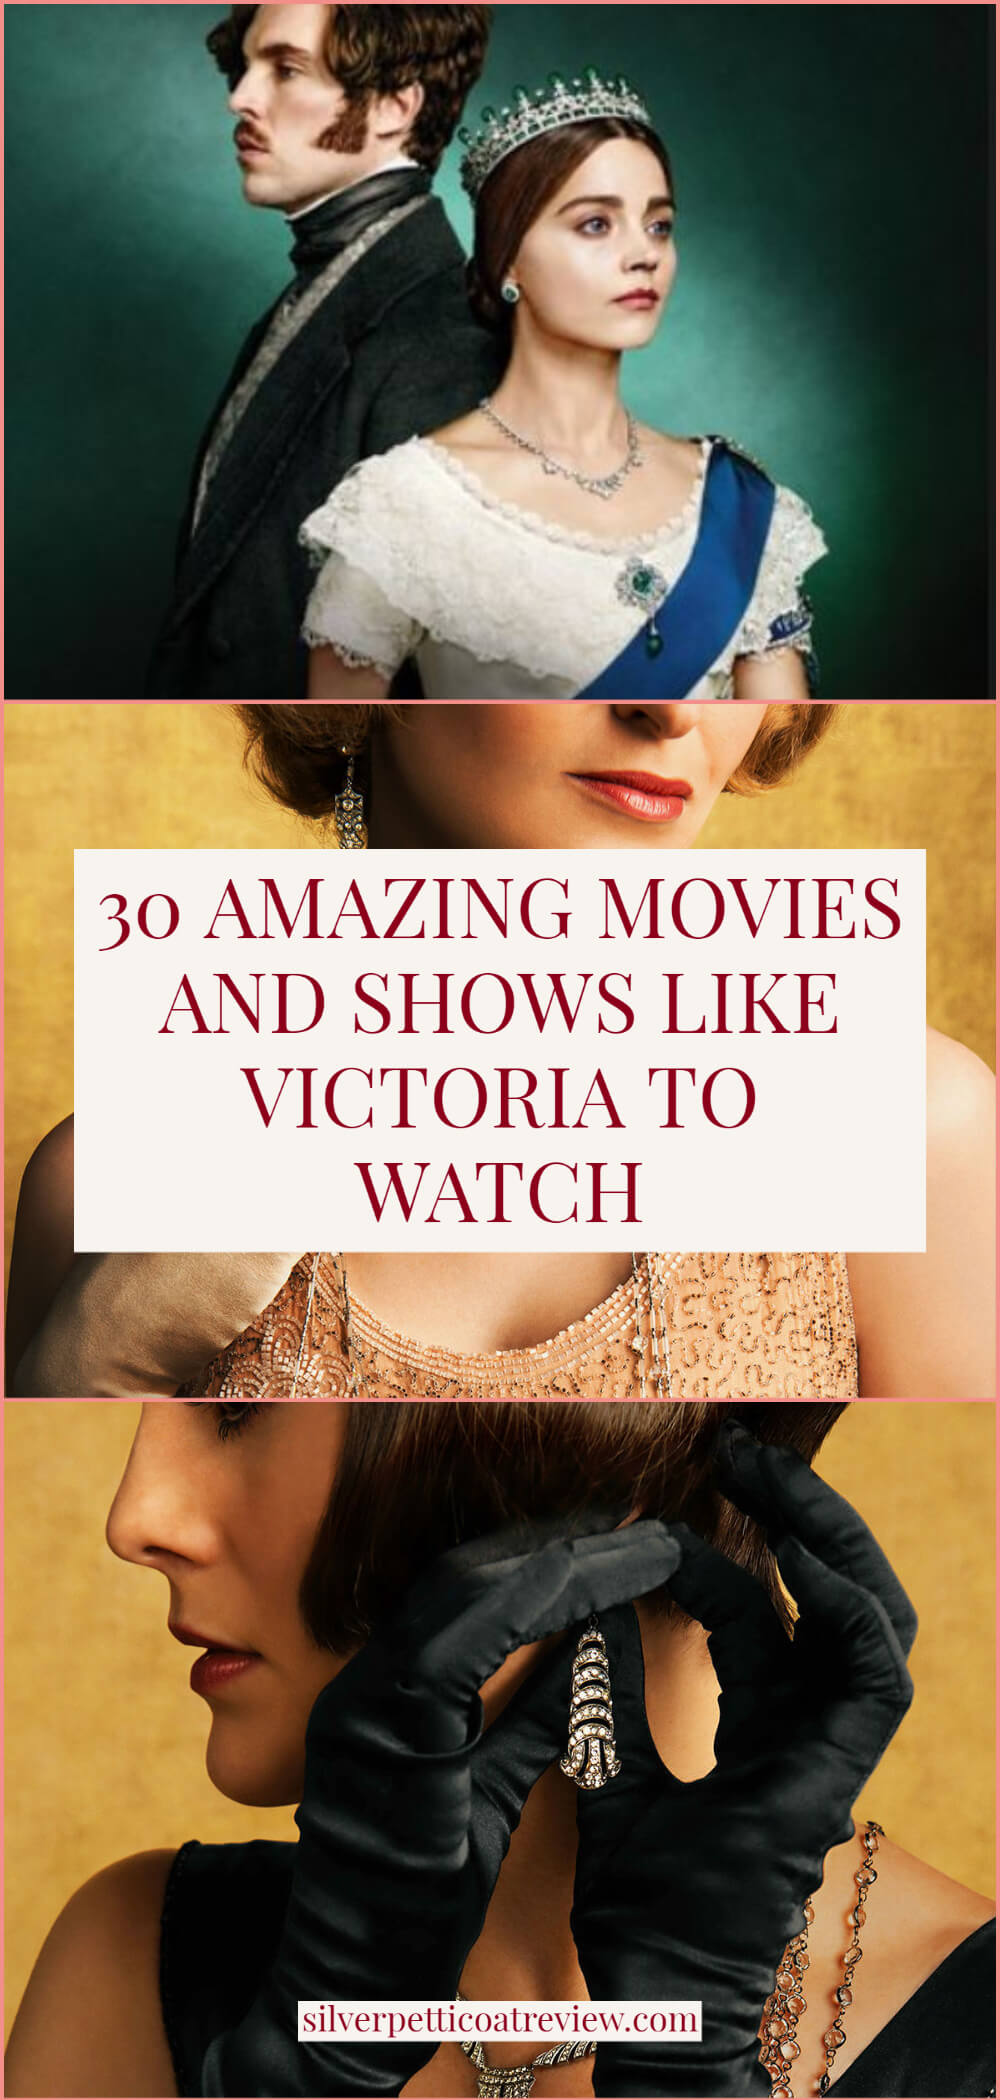 30 Amazing Movies and Shows Like Victoria to Watch - Pinterest Graphic